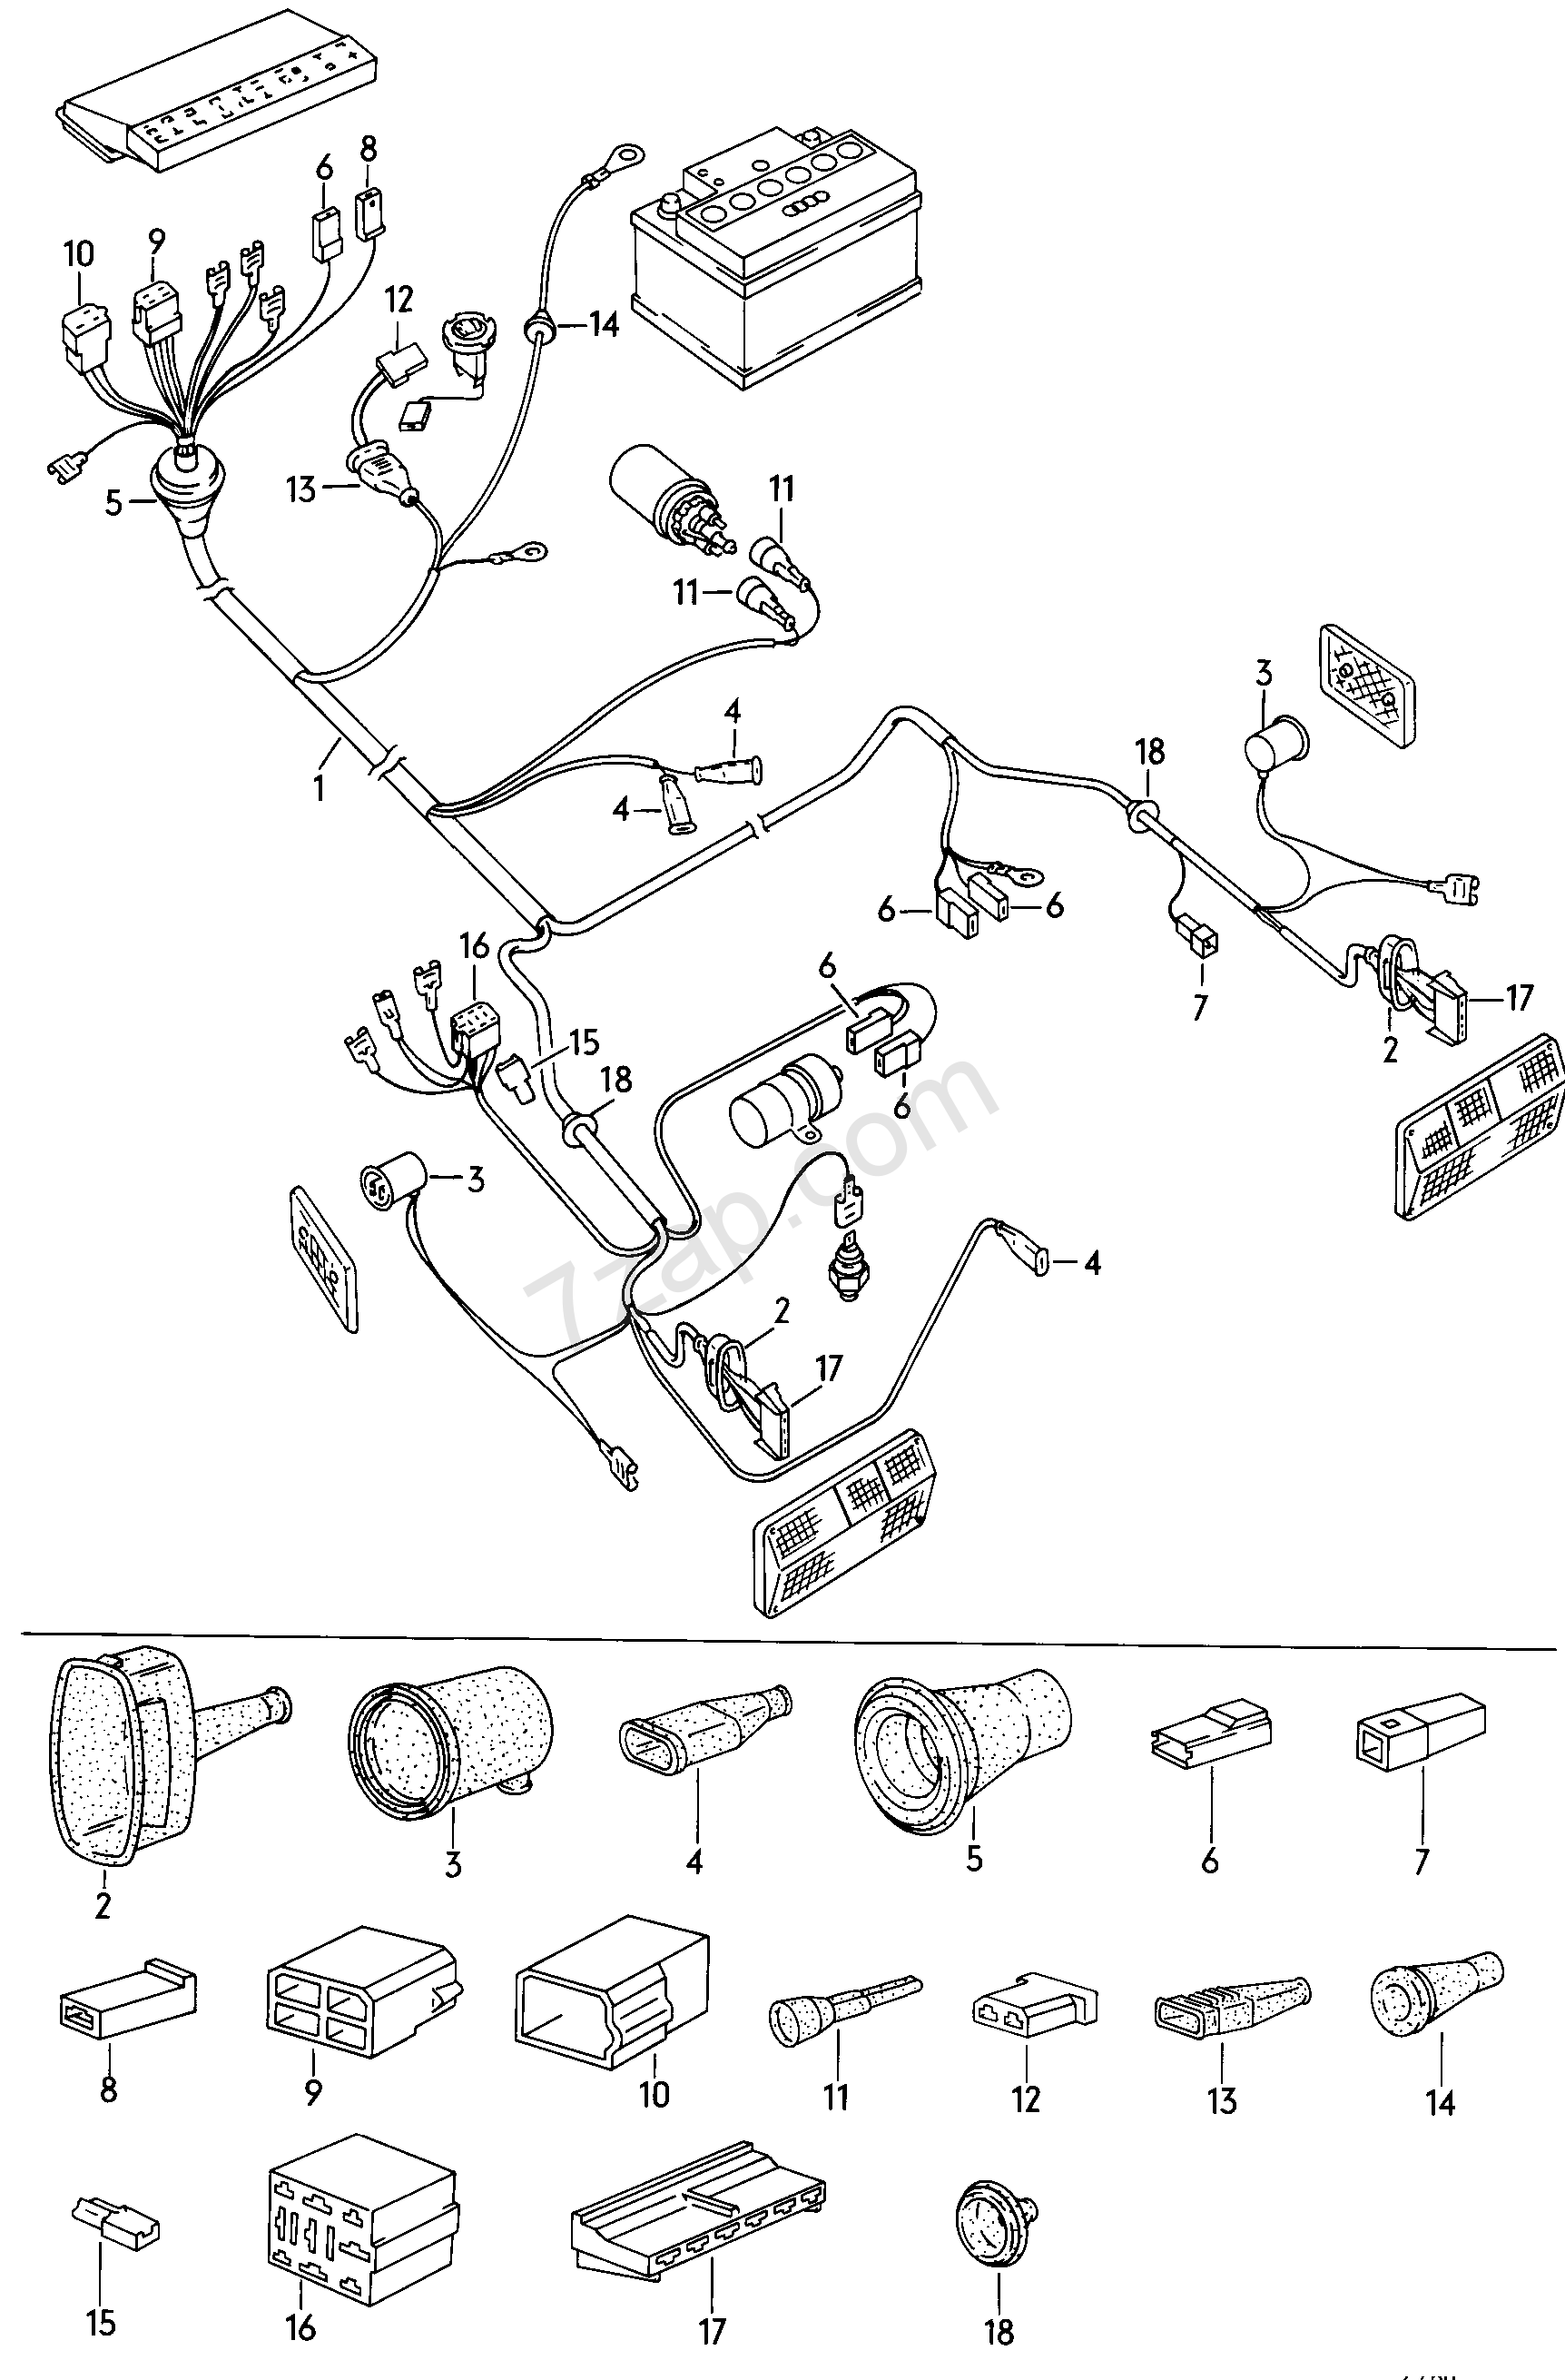 vanagon fuse box wiring library Ford Starter Wiring Diagram wiring harness for fuse box tail light f vanagon